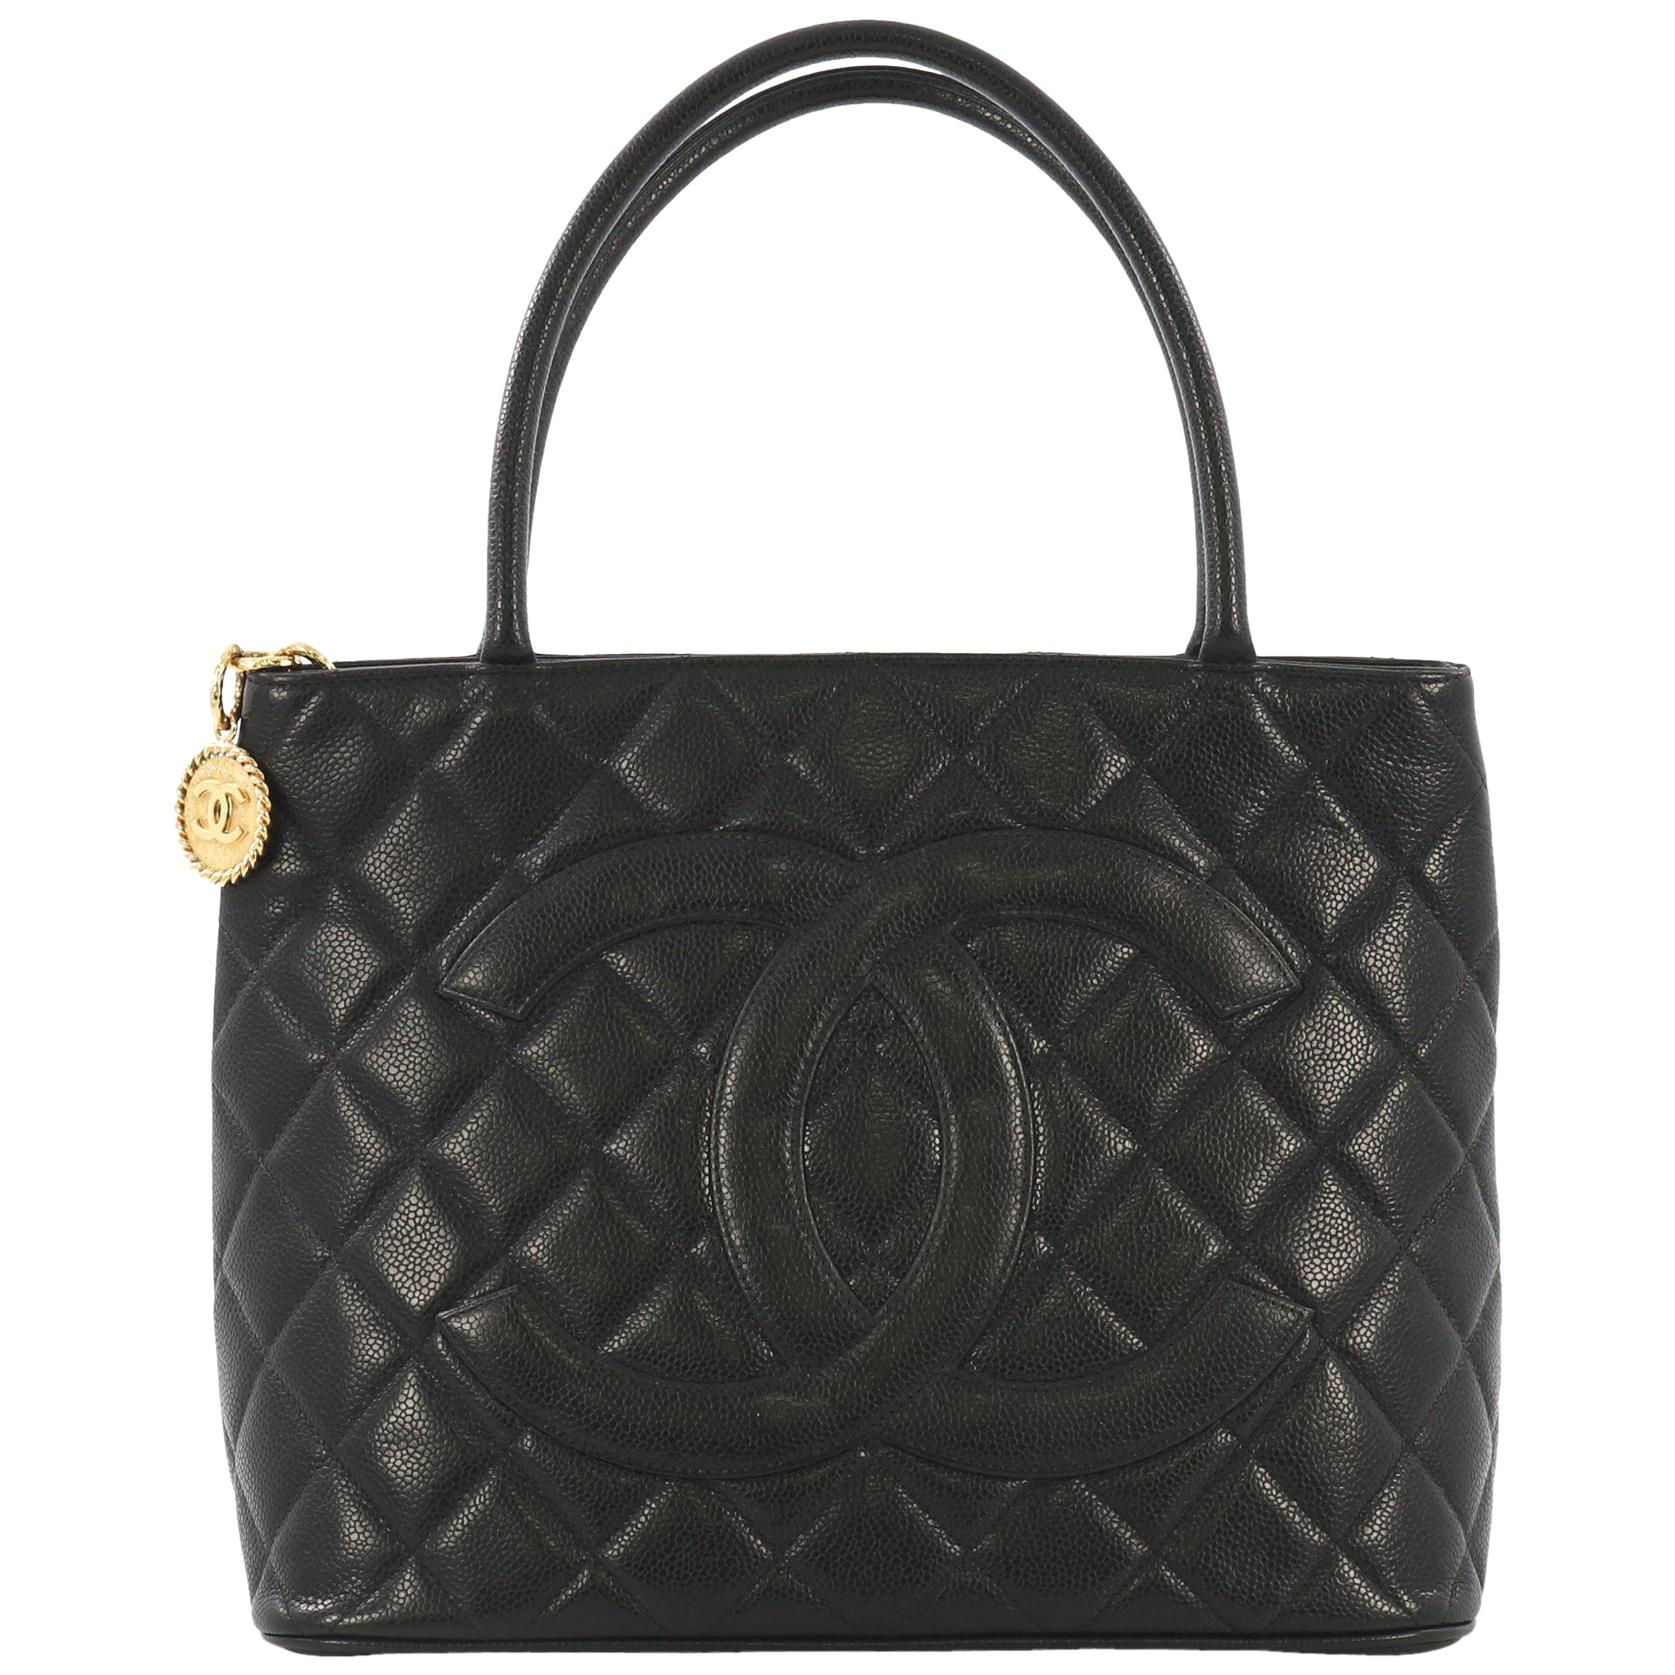 e2b41077103b Vintage Chanel Tote Bags - 536 For Sale at 1stdibs